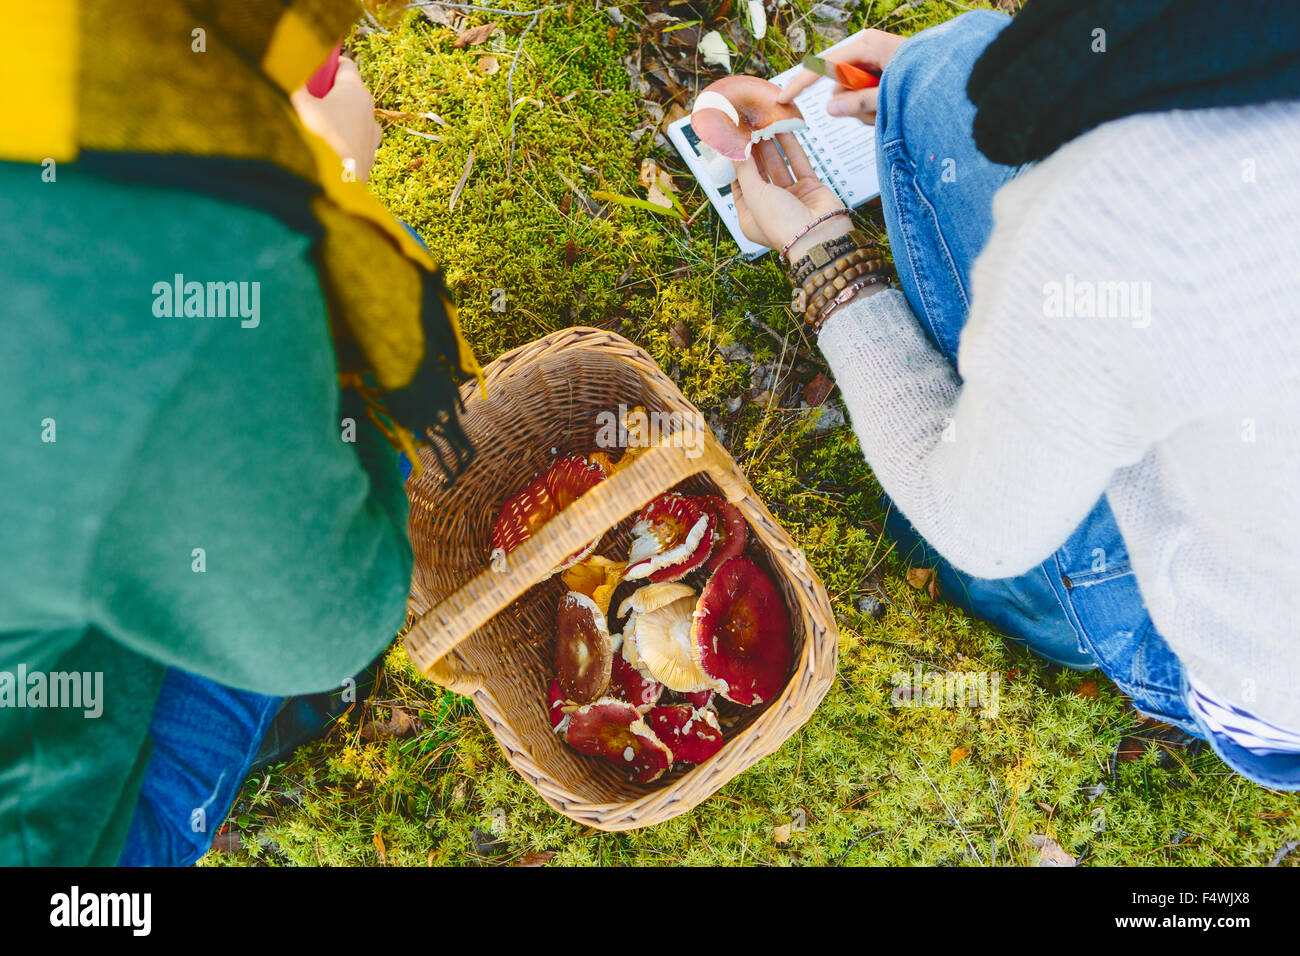 Finland, Etela-Savo, Huttula, Two young women crouching by basketful of Russula mushrooms - Stock Image